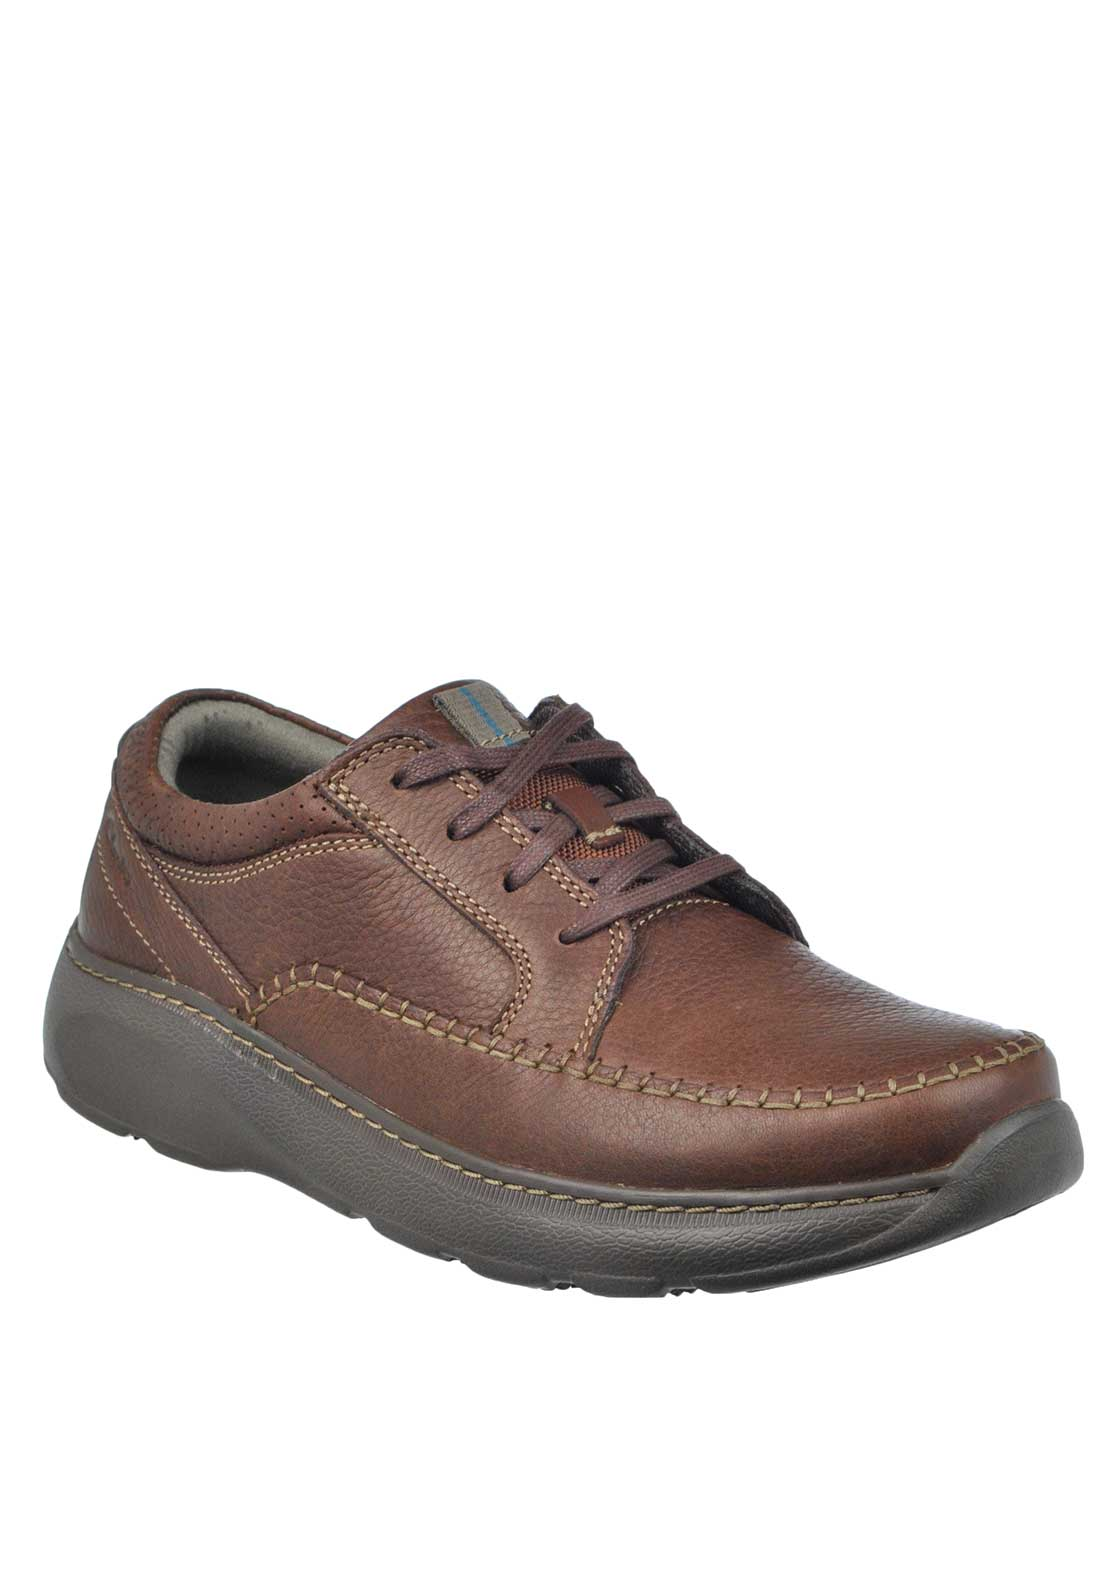 Clarks Mens Charton Lace Up Leather Shoe, Brown